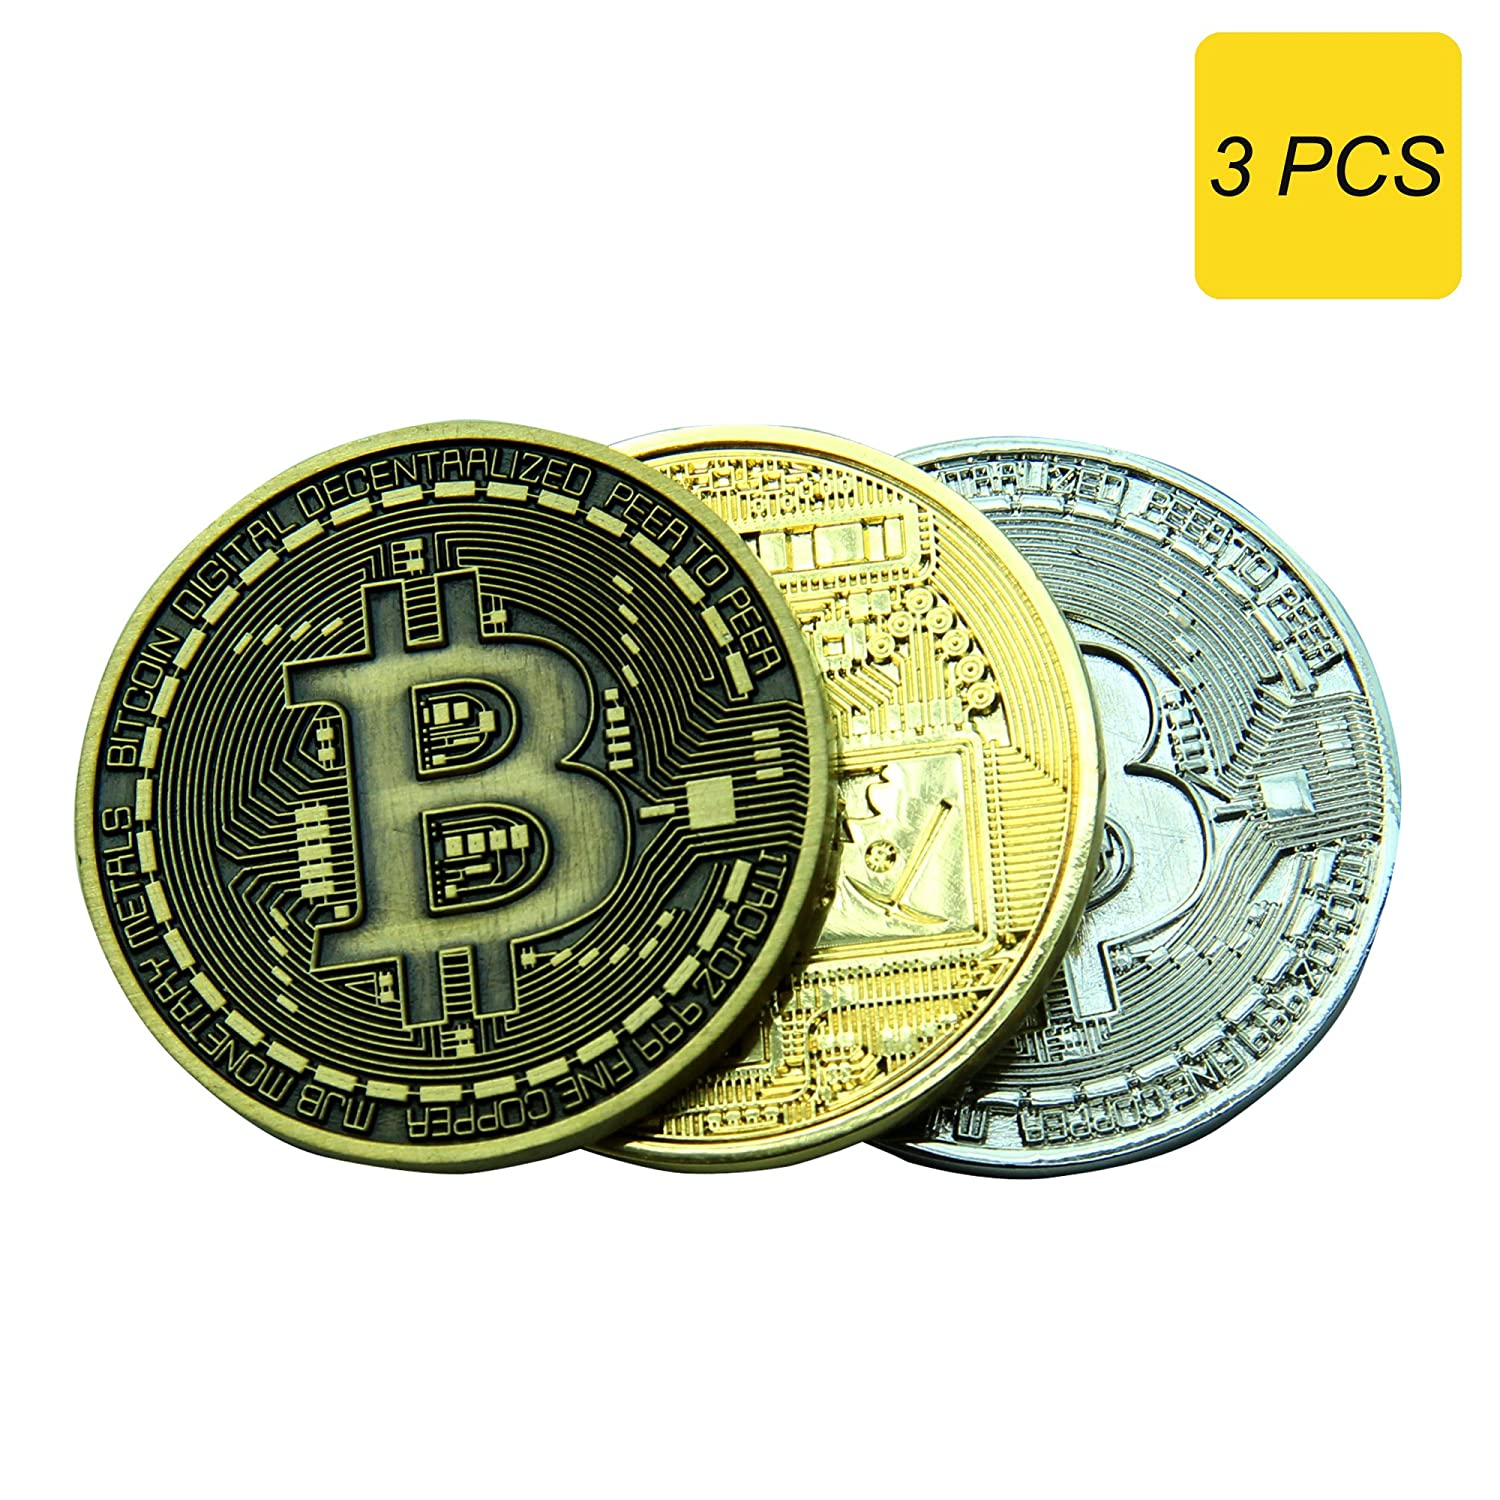 Bitcoin記念メタルCollectors Coin In ProtectiveアクリルDisplayケース 3 coins G-BCGBS B079CDFHQ7  Gold, Silver, Bronze 3 coins